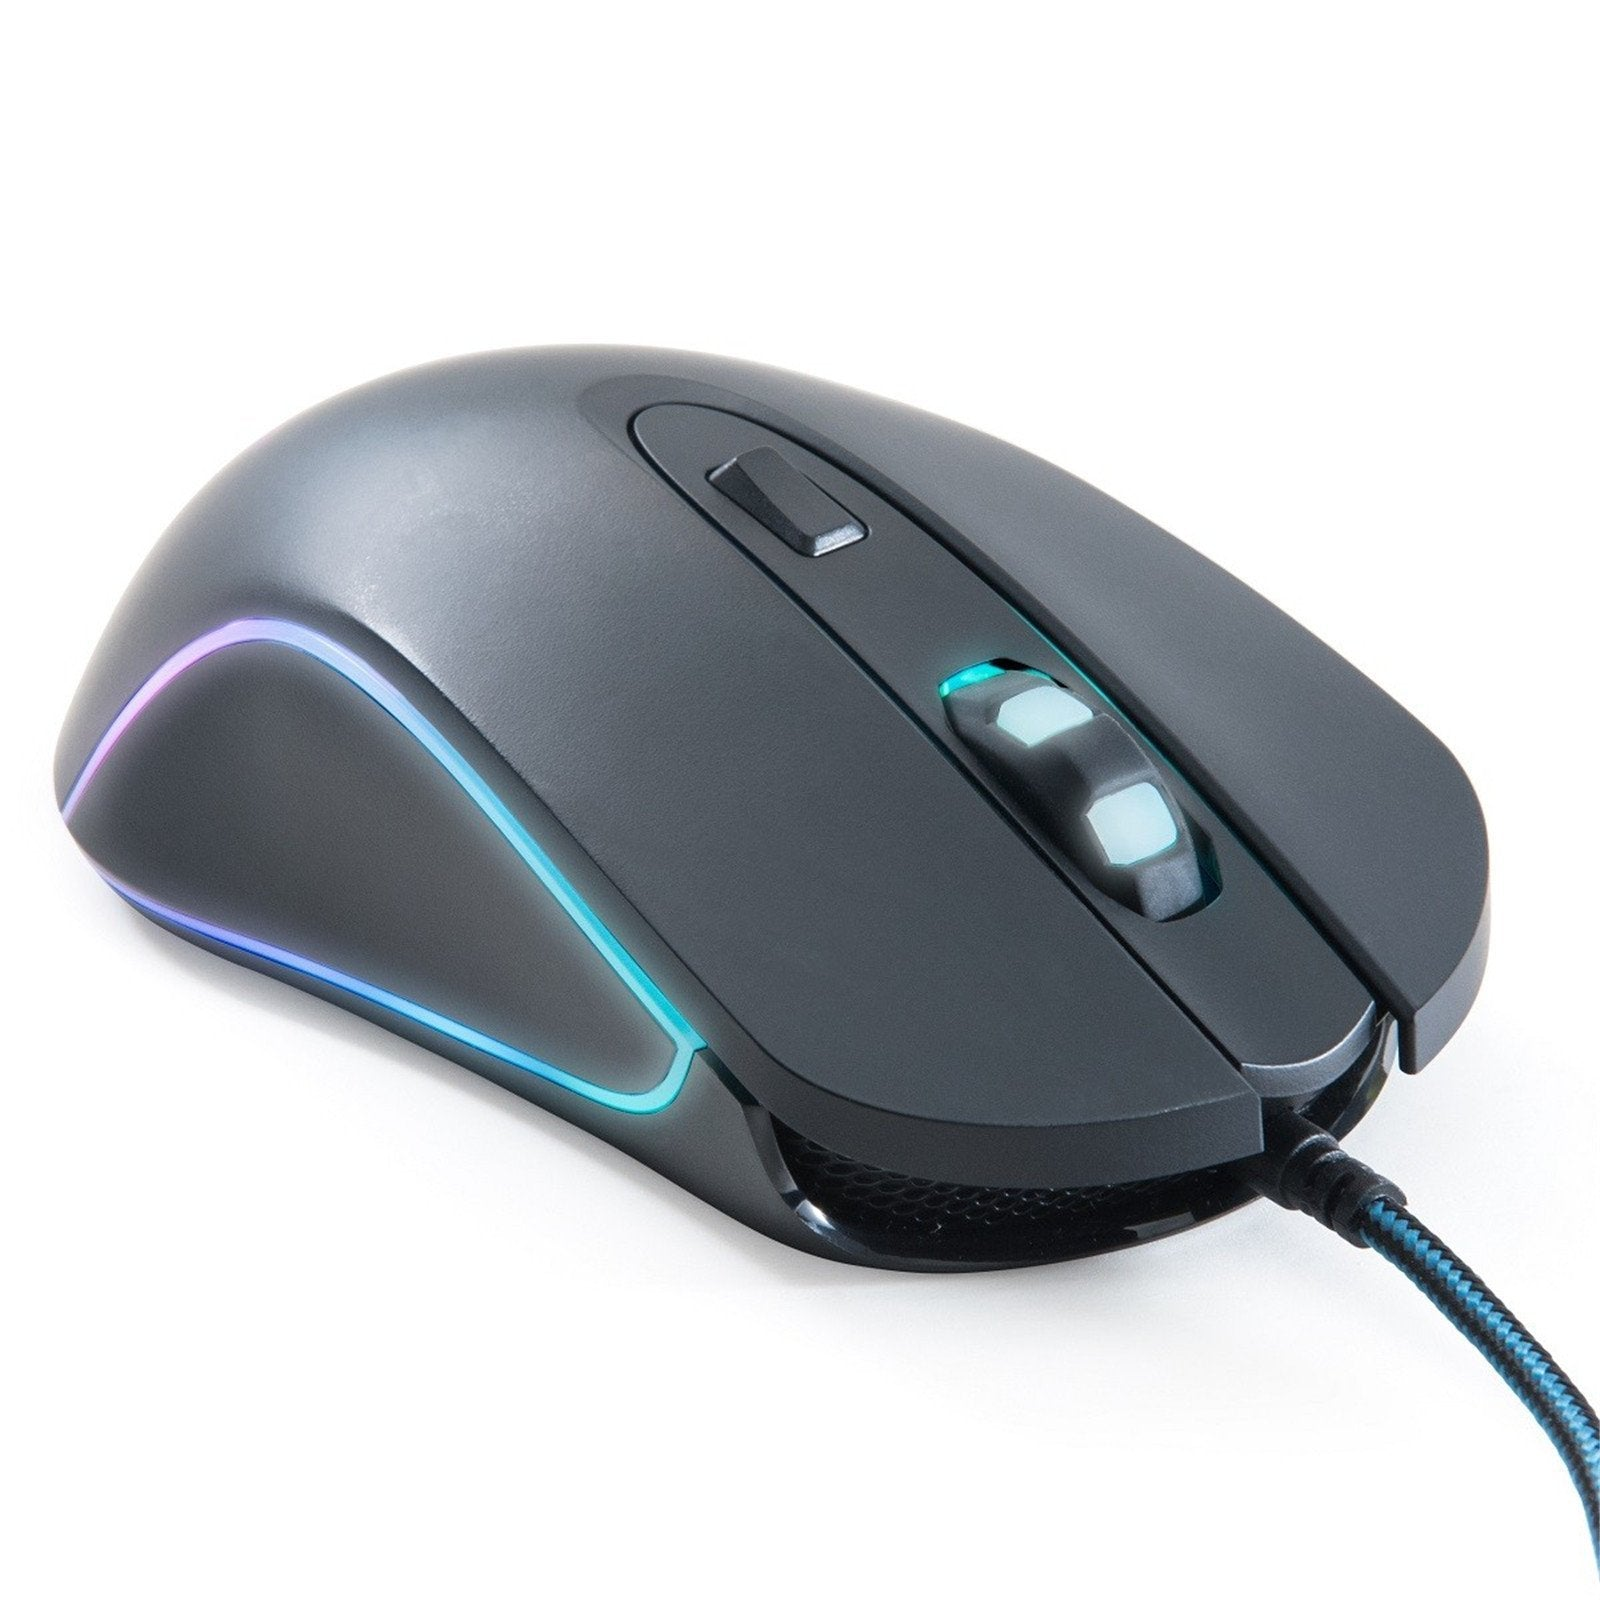 E-Blue EMS667 Gaming Mouse - Wired